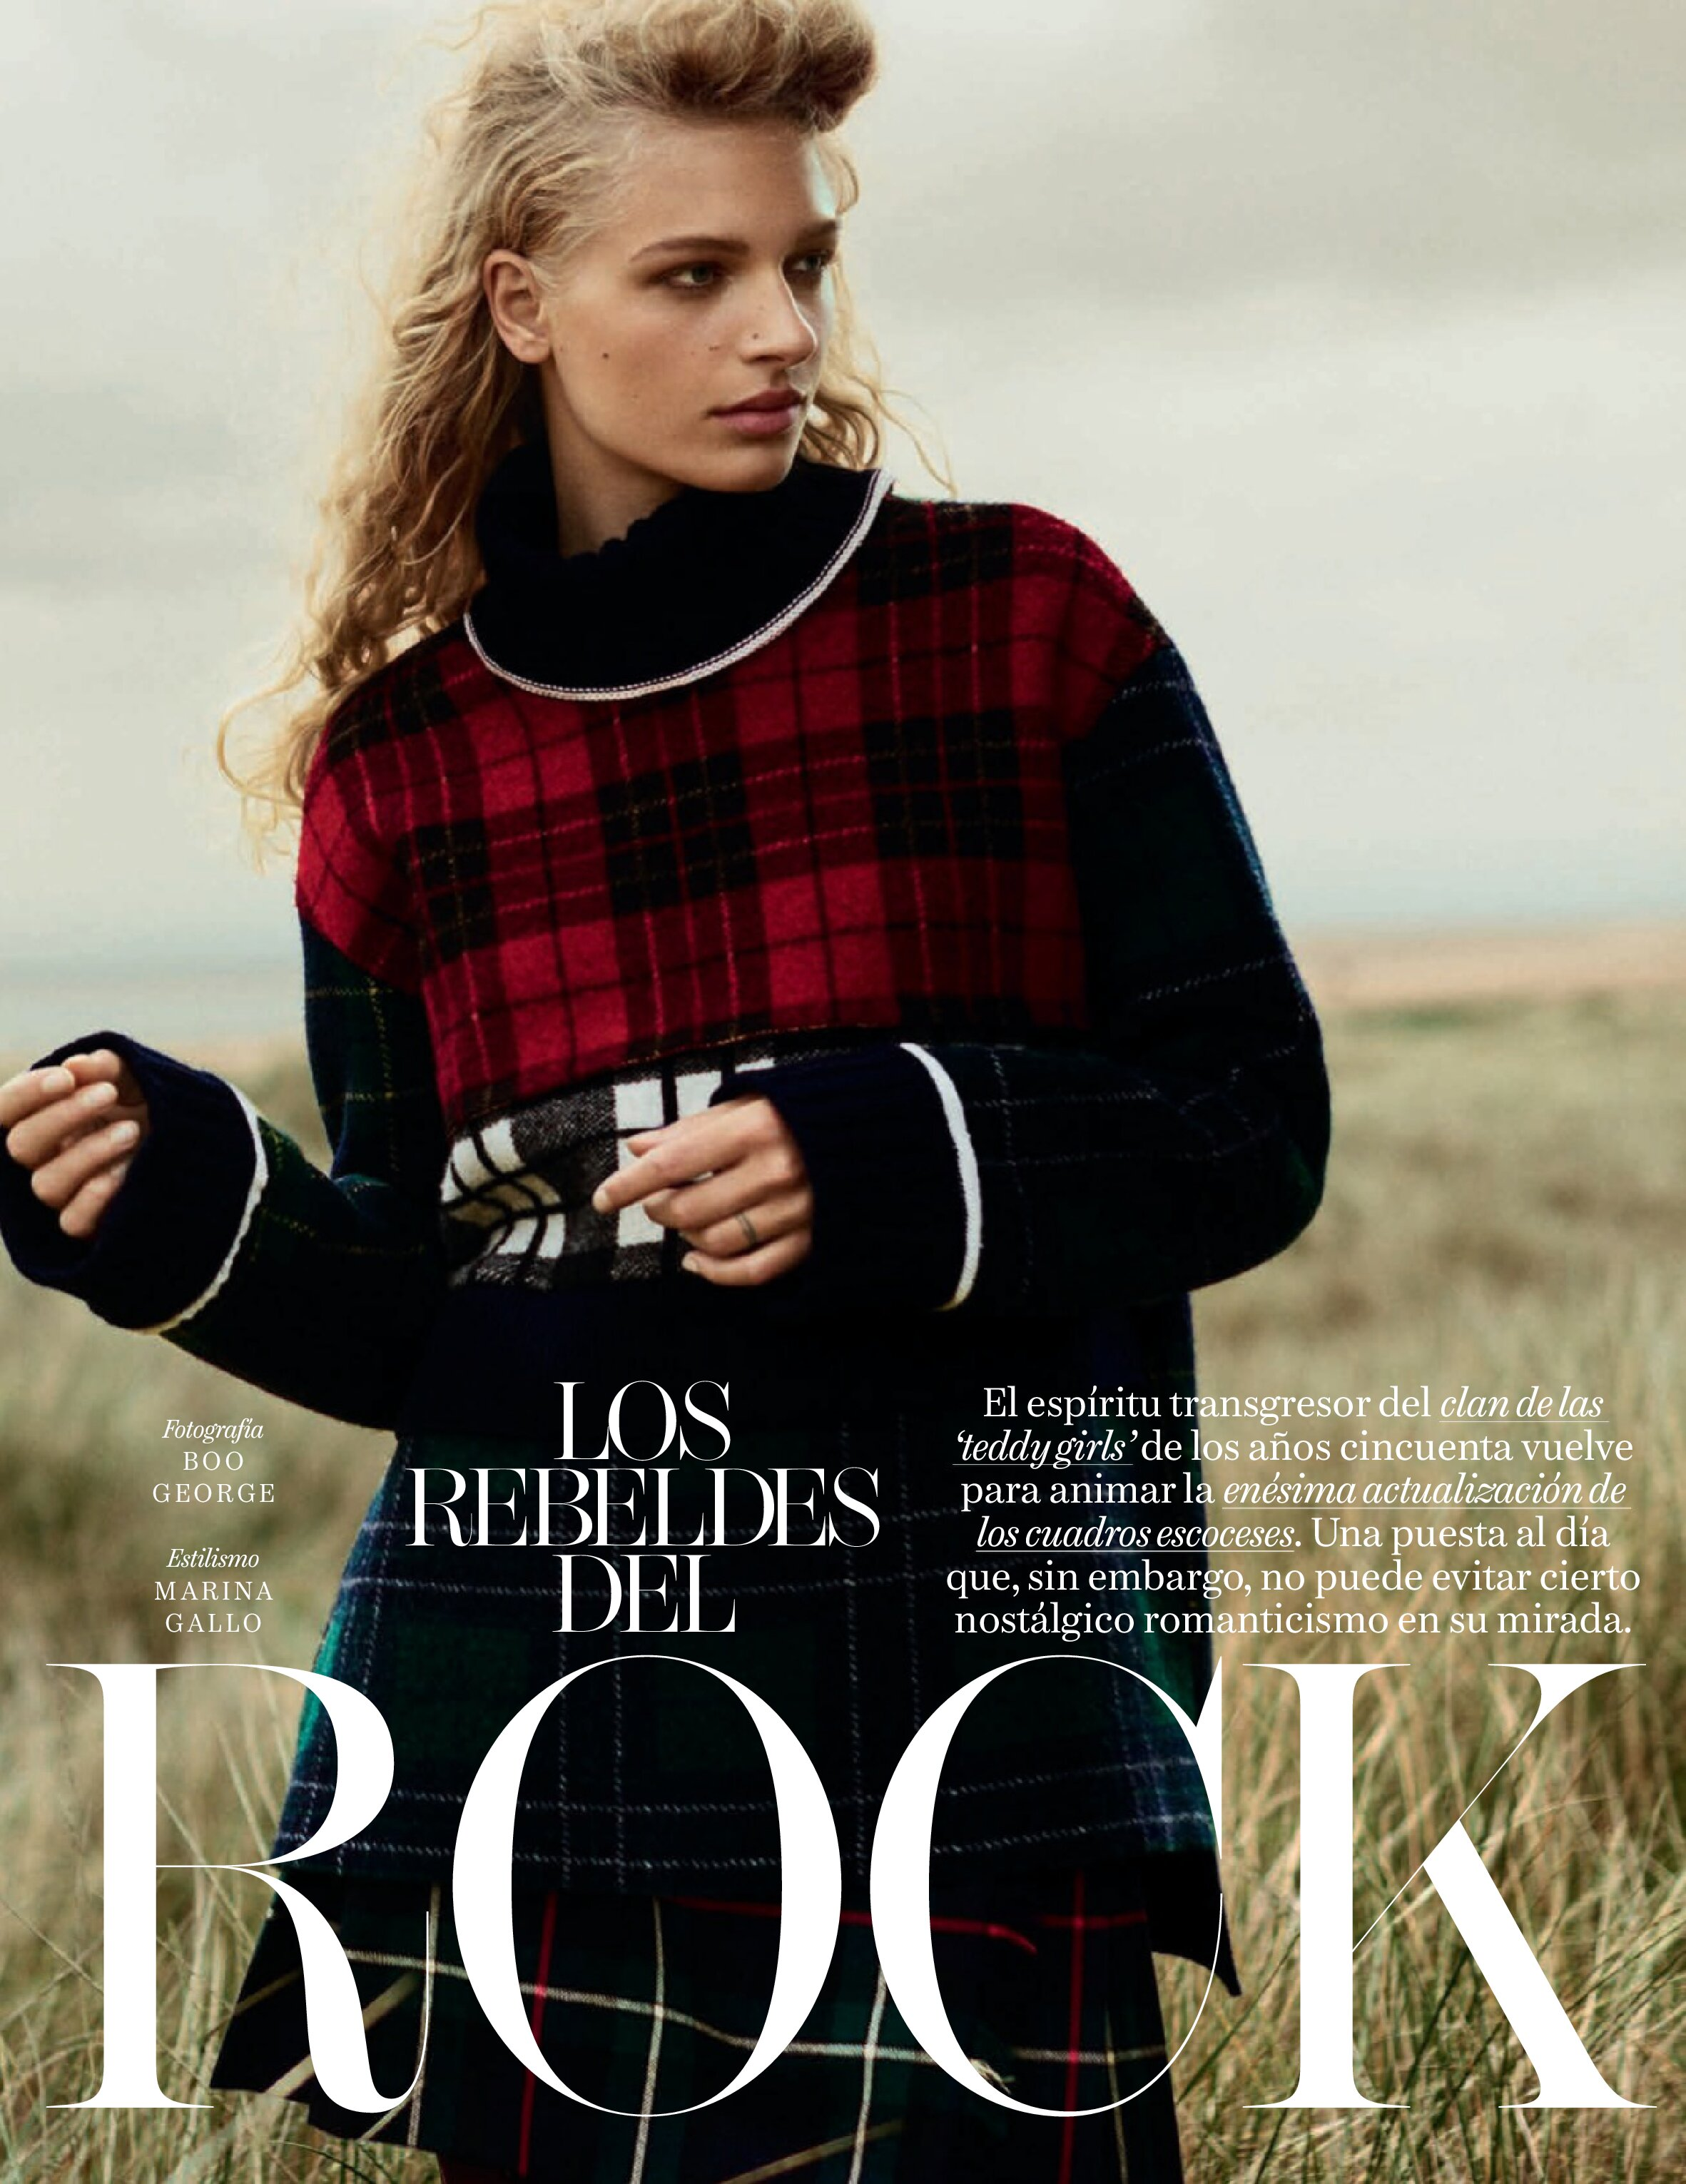 Frederike Sofie by Boo George for Vogue Spain Sept 2019 (9).jpg